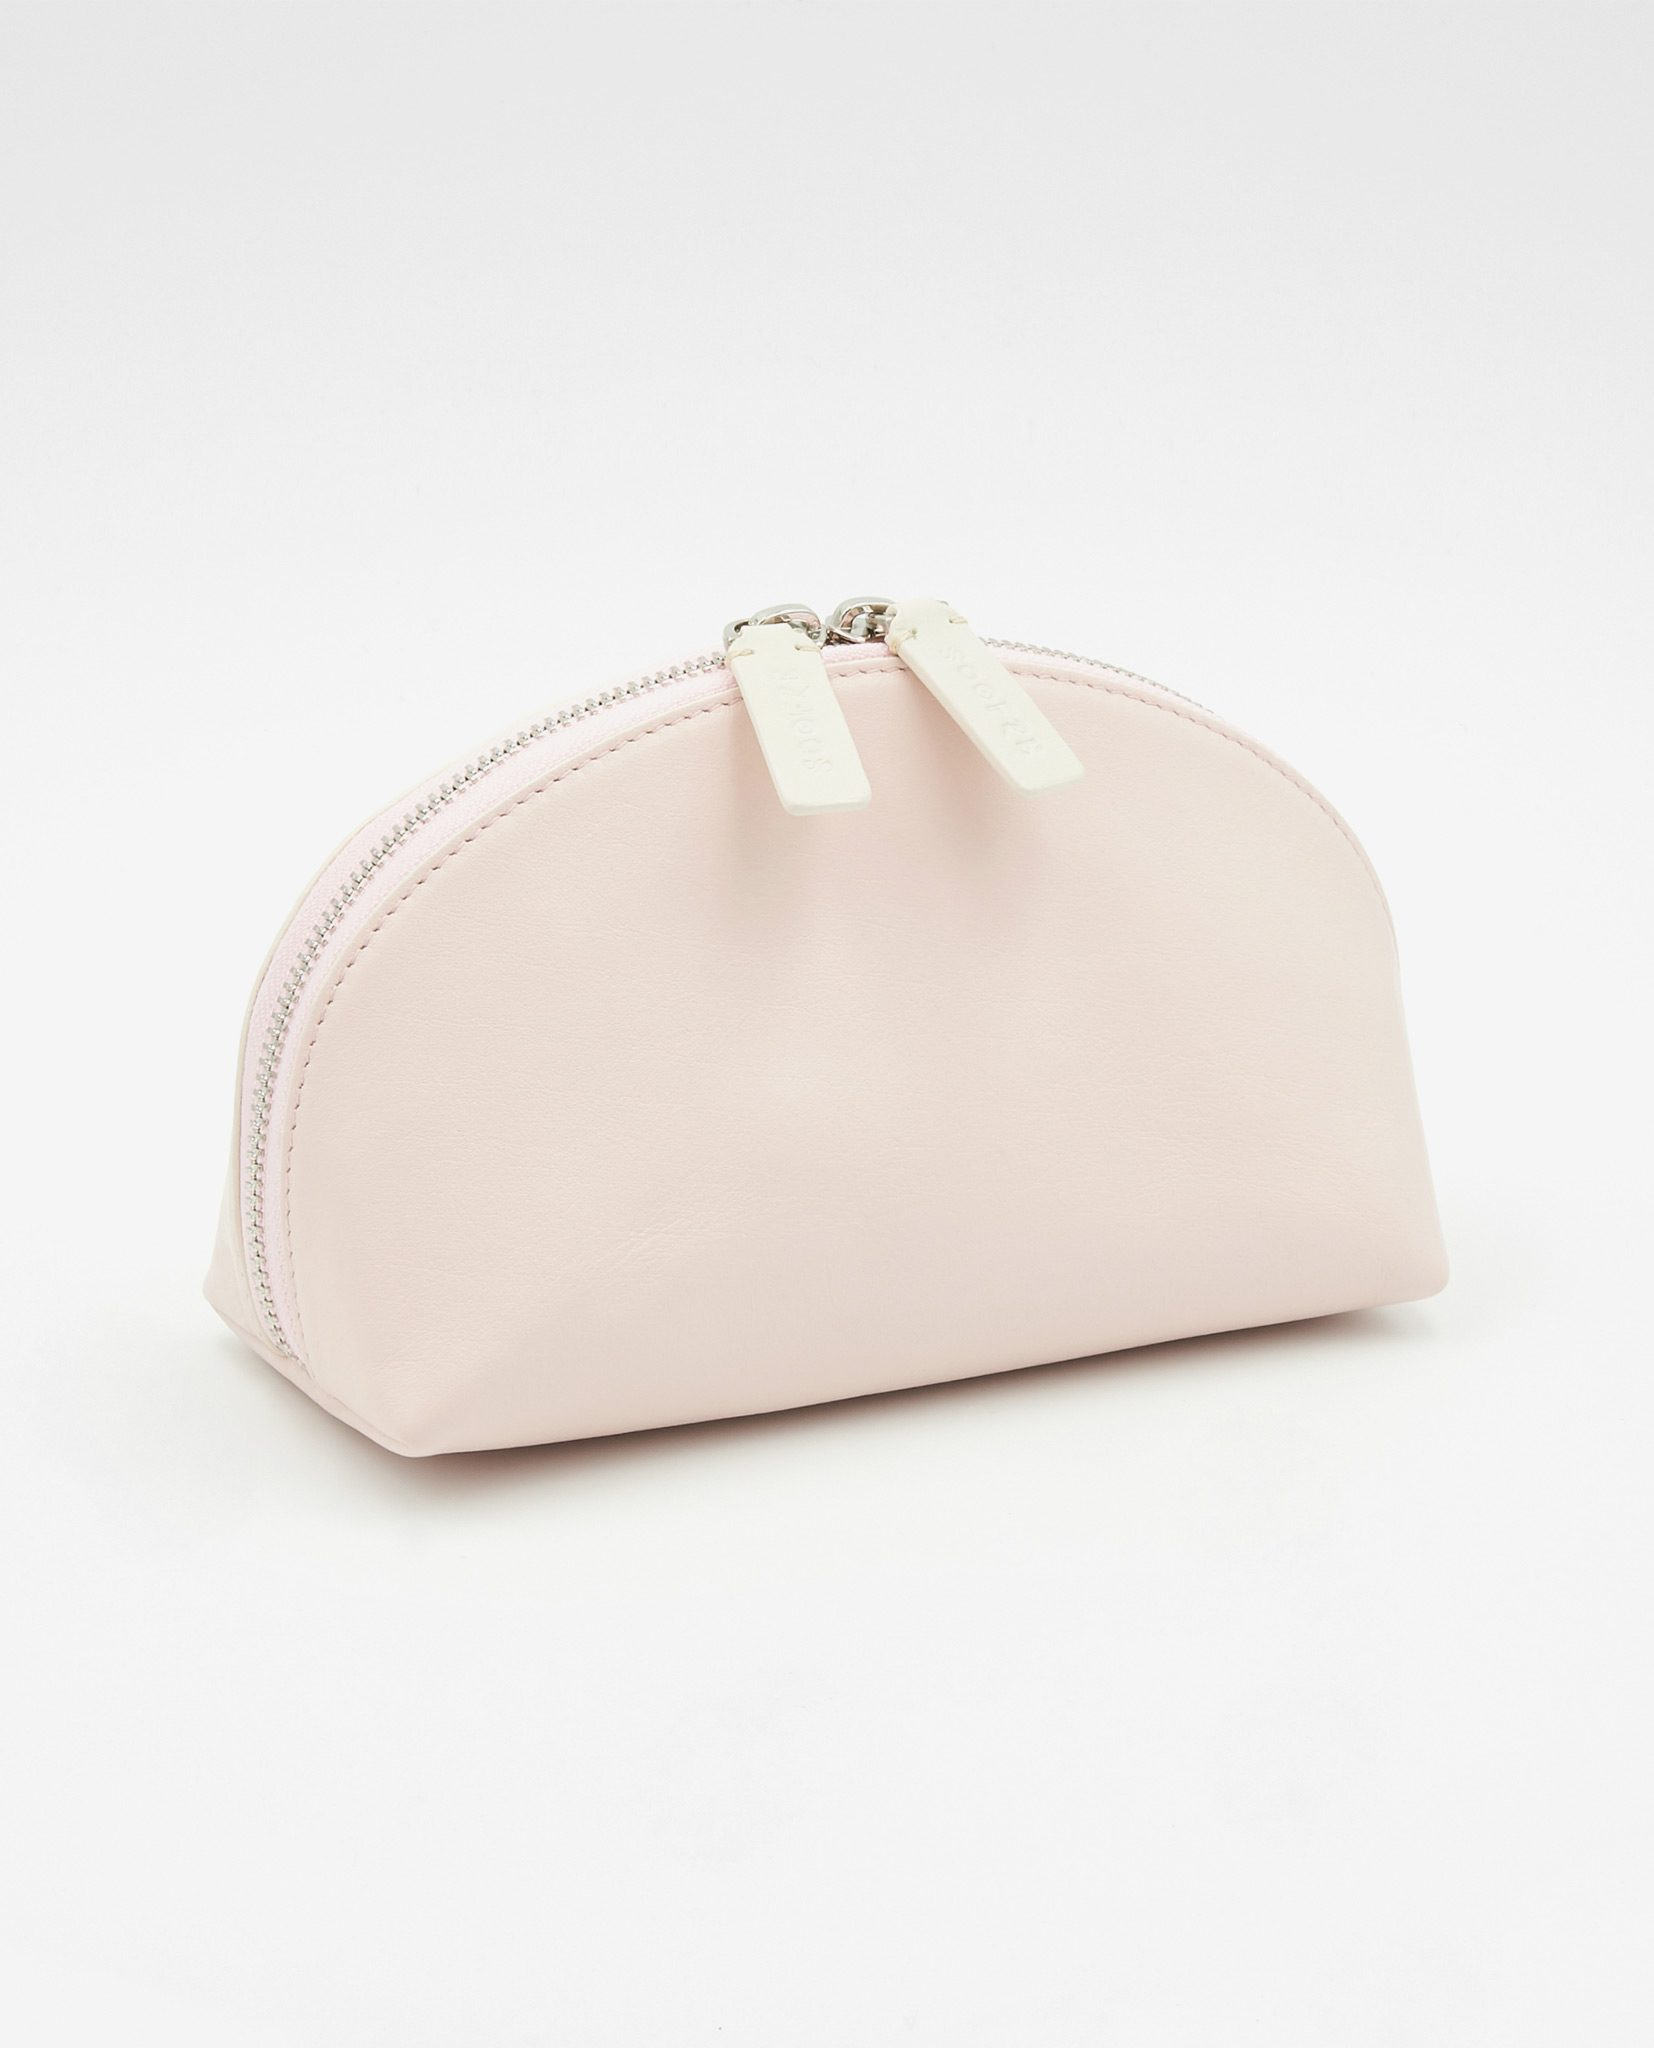 Soofre_Cosmetic-Cream-Blush-Beige-1